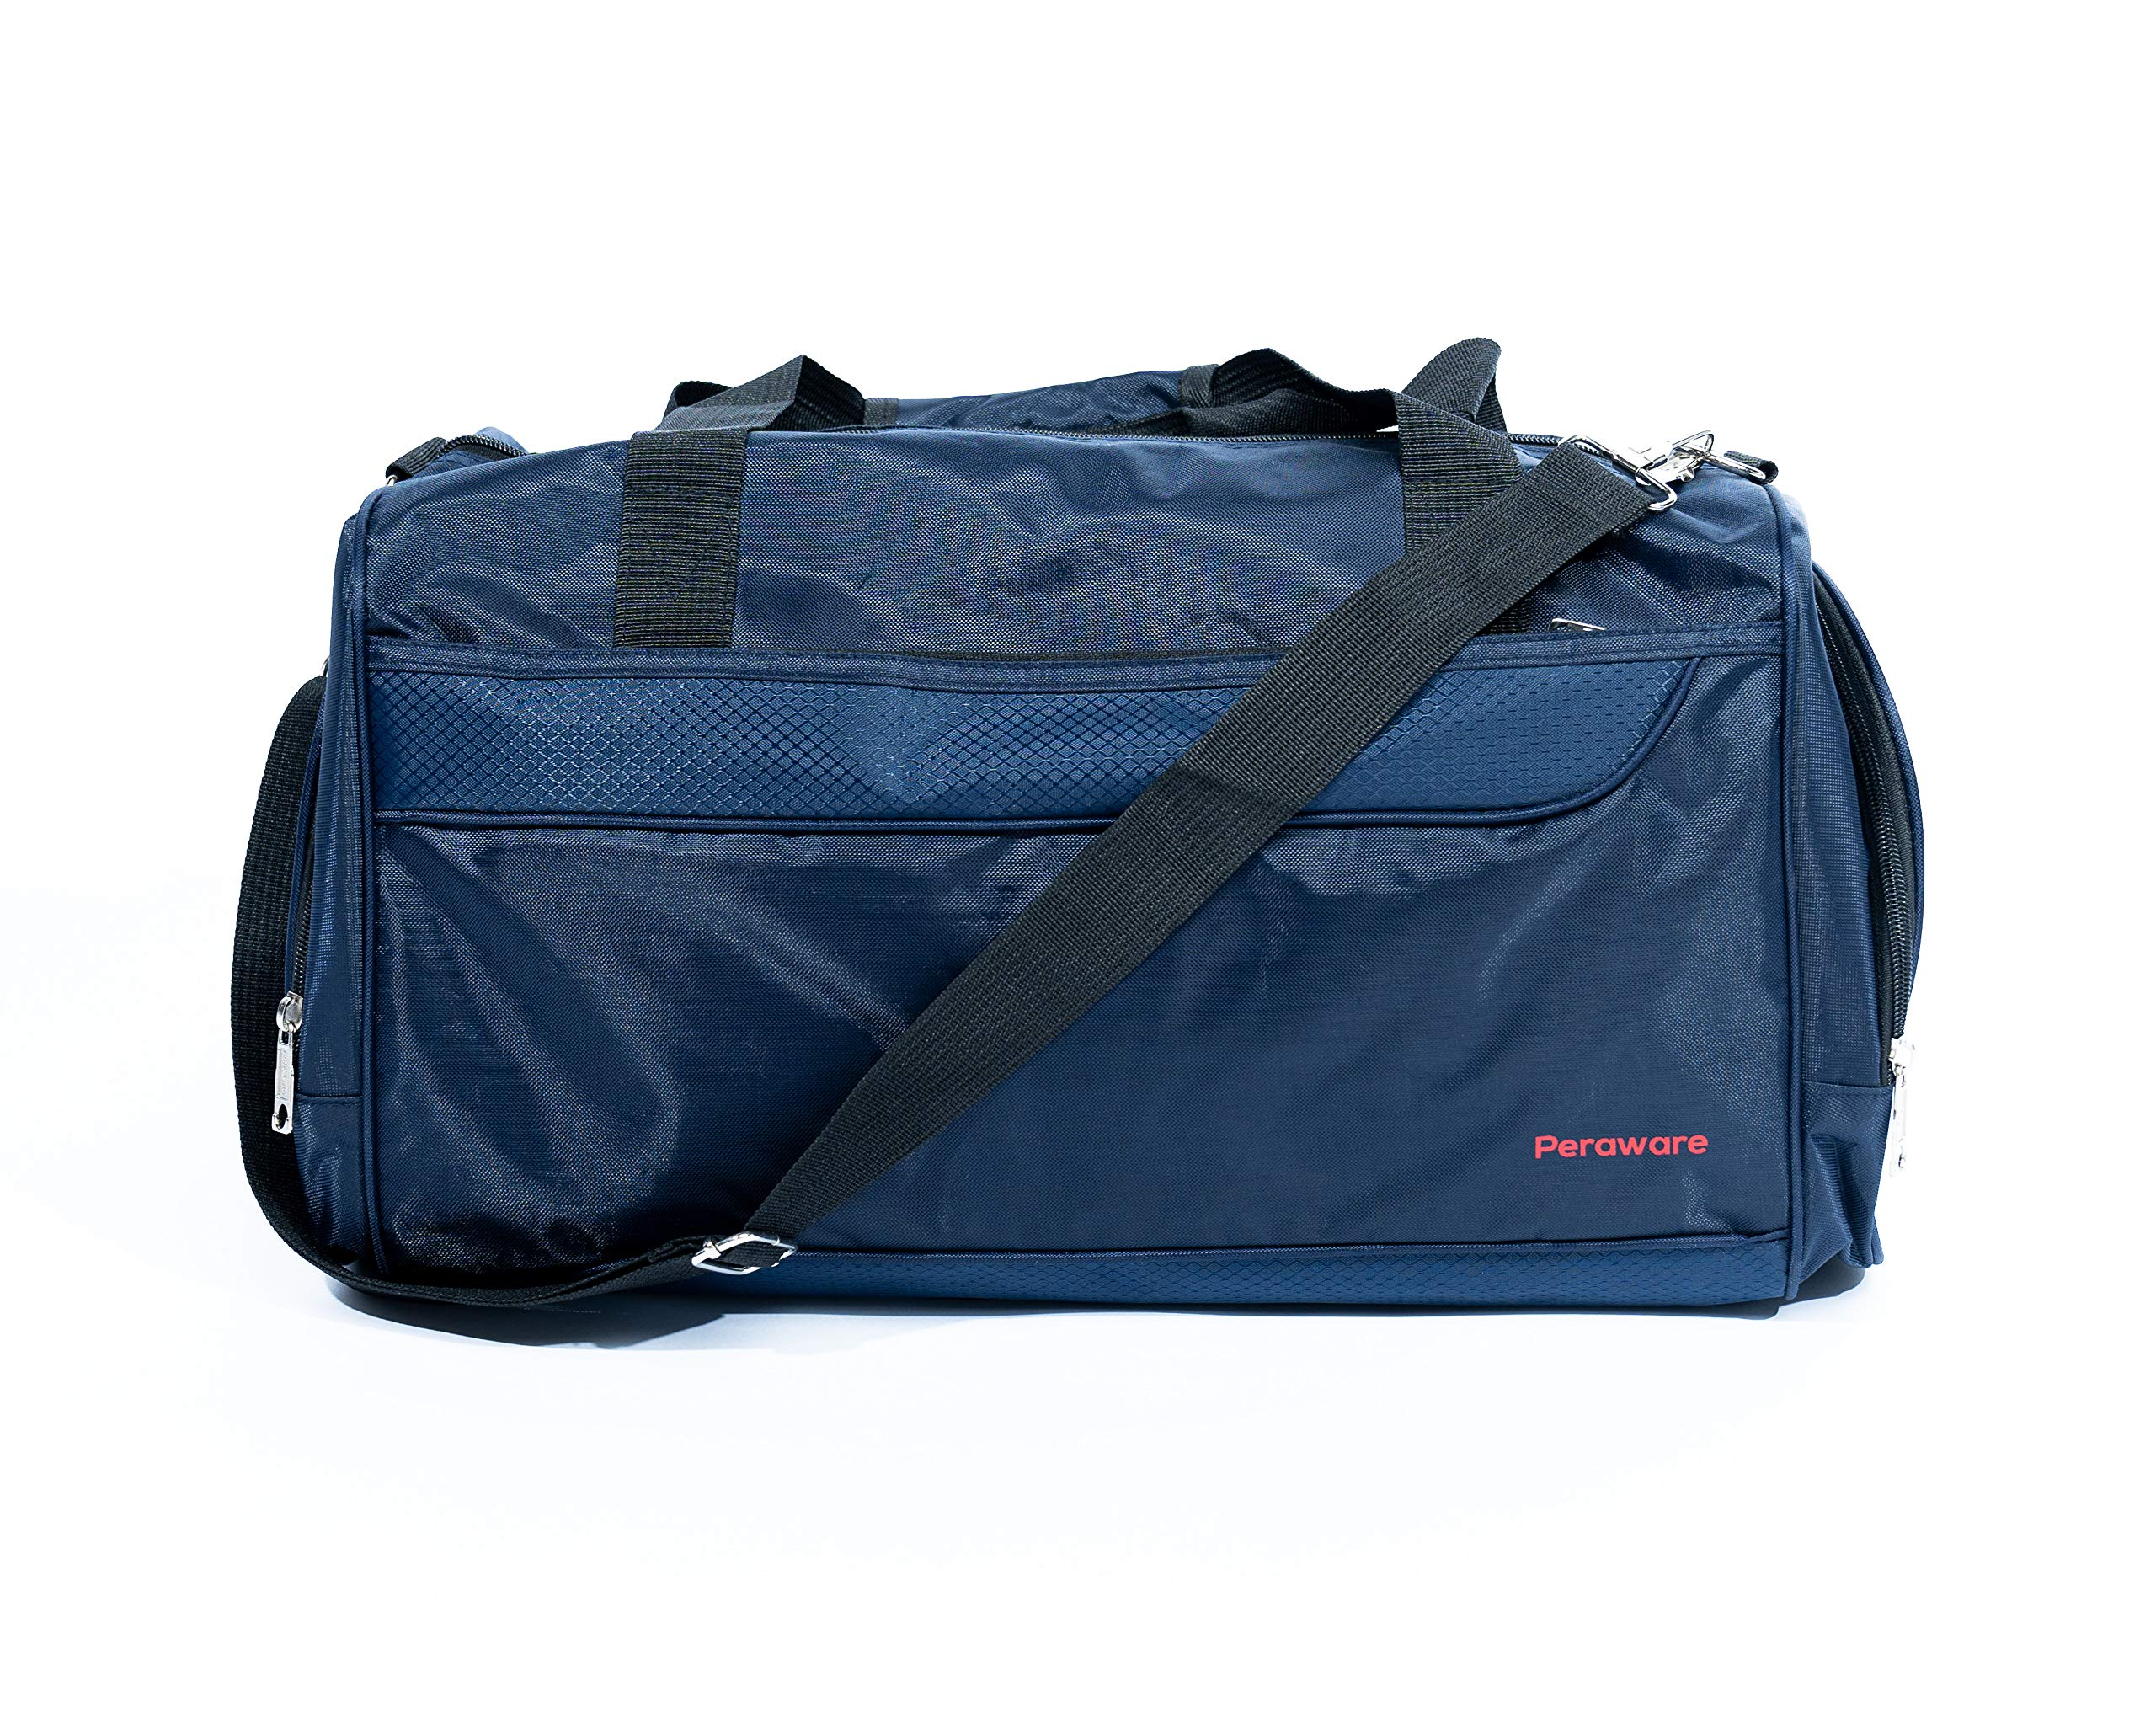 Peraware Sport Duffle Bag for Fitness Gym Sports Travel Lightweight Luggage Carry-on (Ocean)